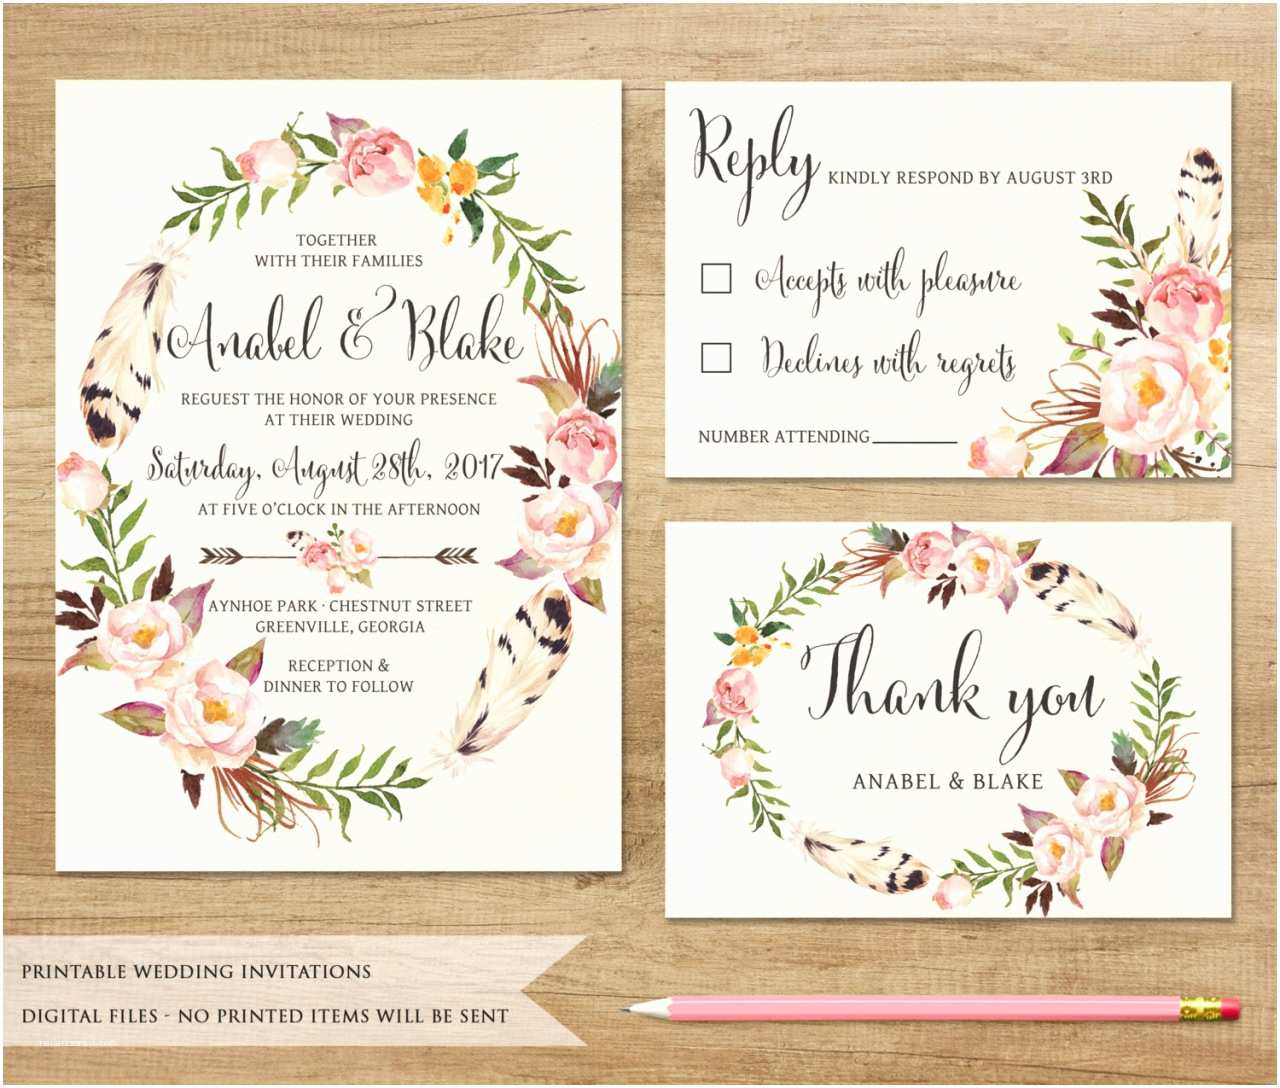 Bohemian Wedding Invitations Wedding Invitation Templates Bohemian Wedding Invitations